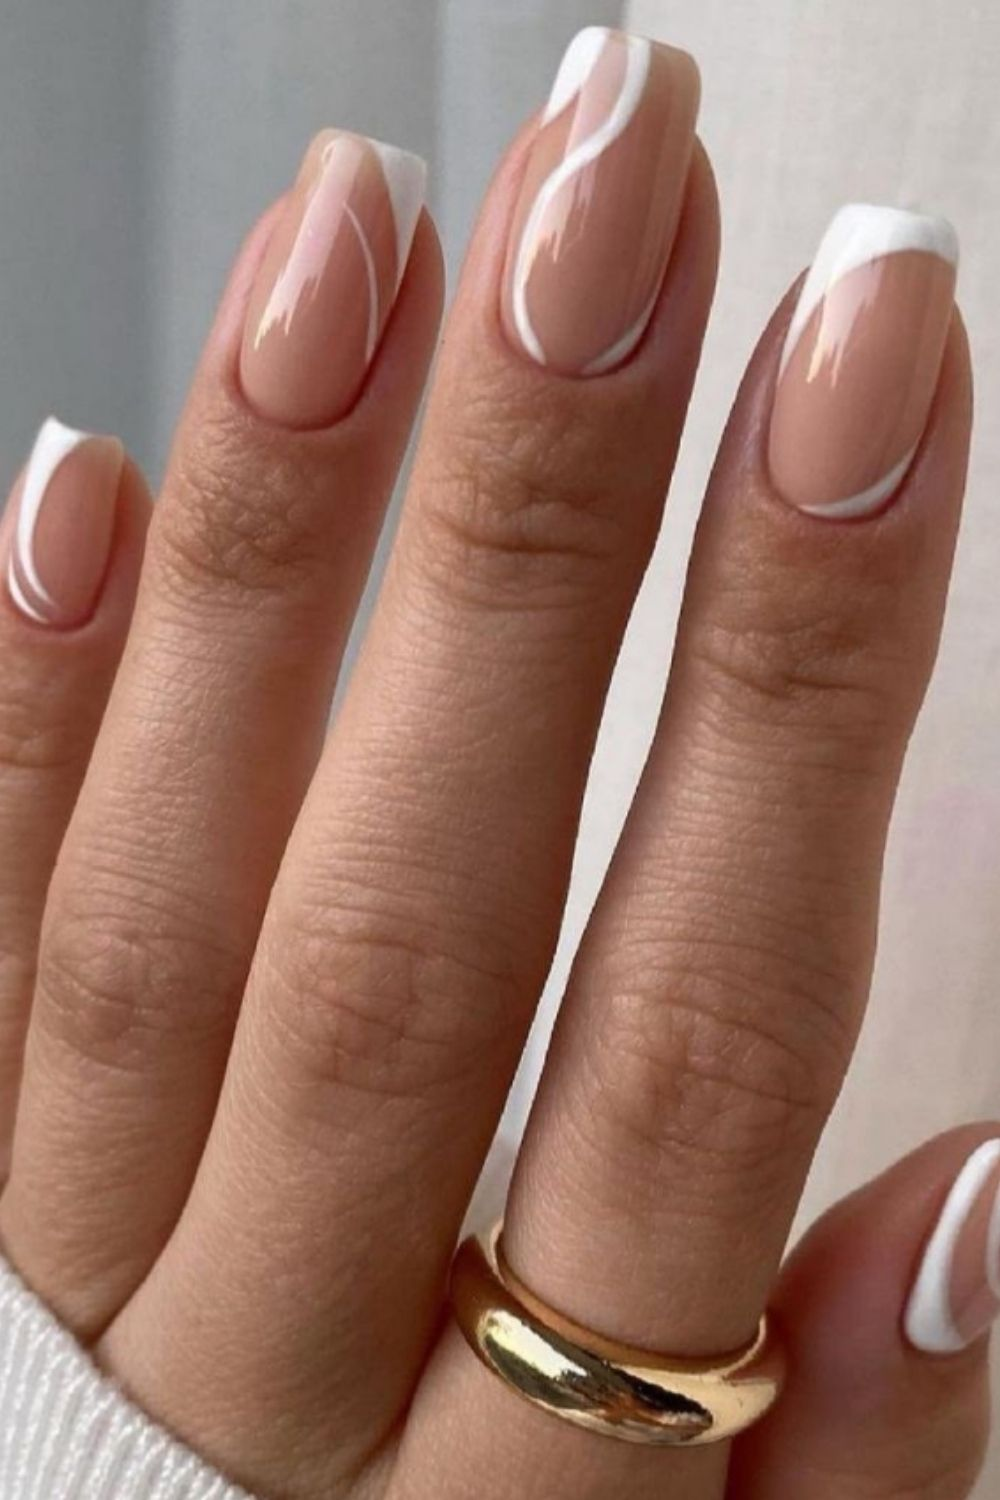 Nude and white square nail designs